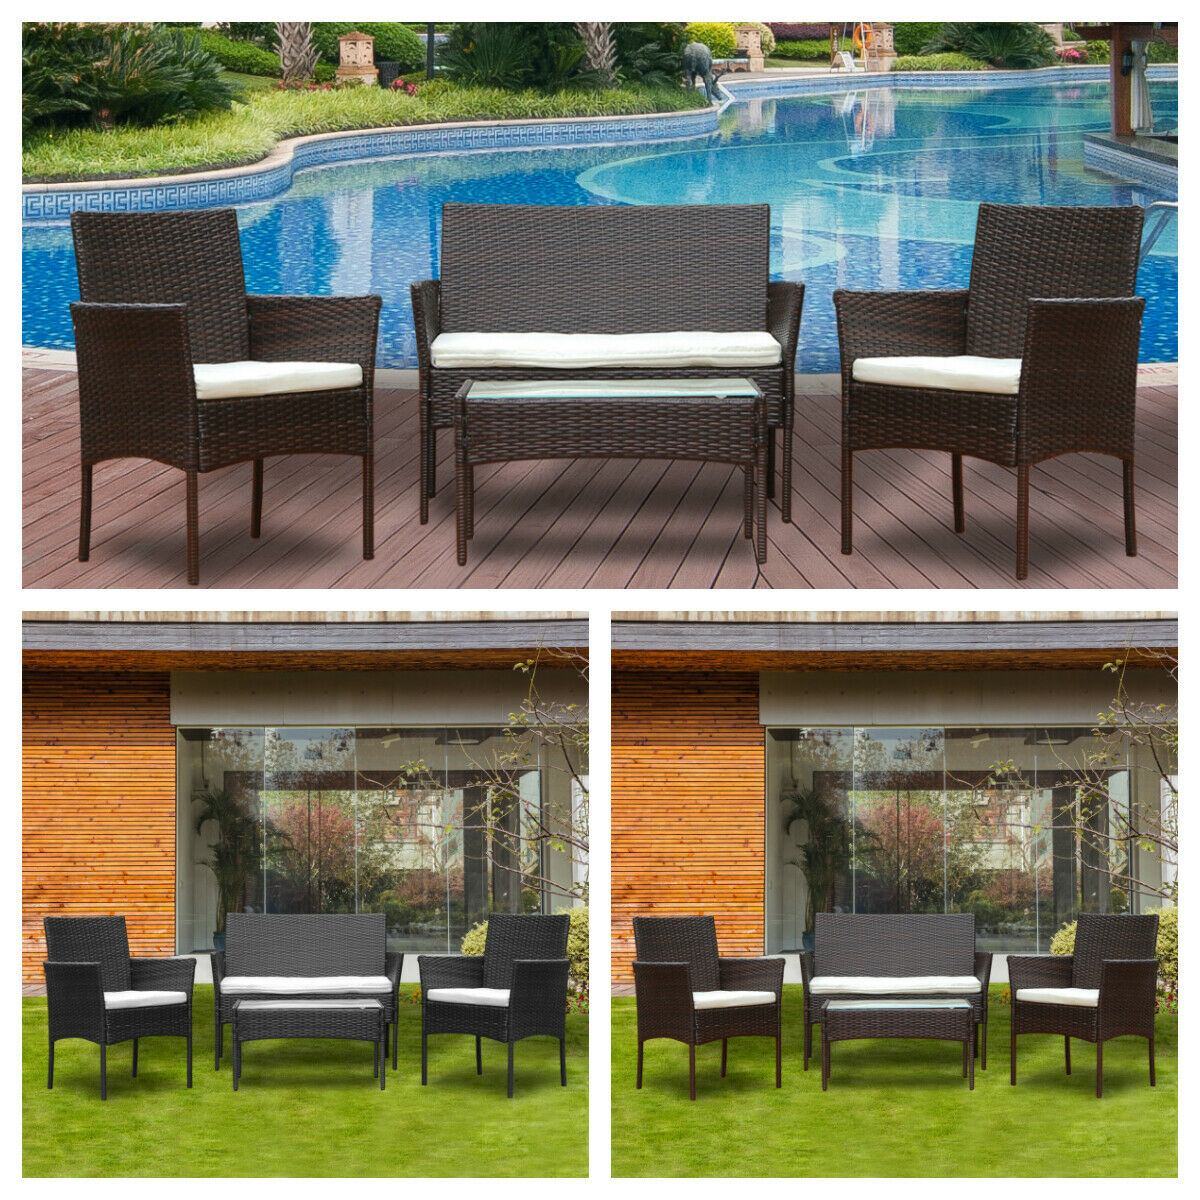 Garden Furniture - 4Pcs Rattan Garden Furniture Sofa Coffee Table Set Chair Outdoor w/ Cushion New